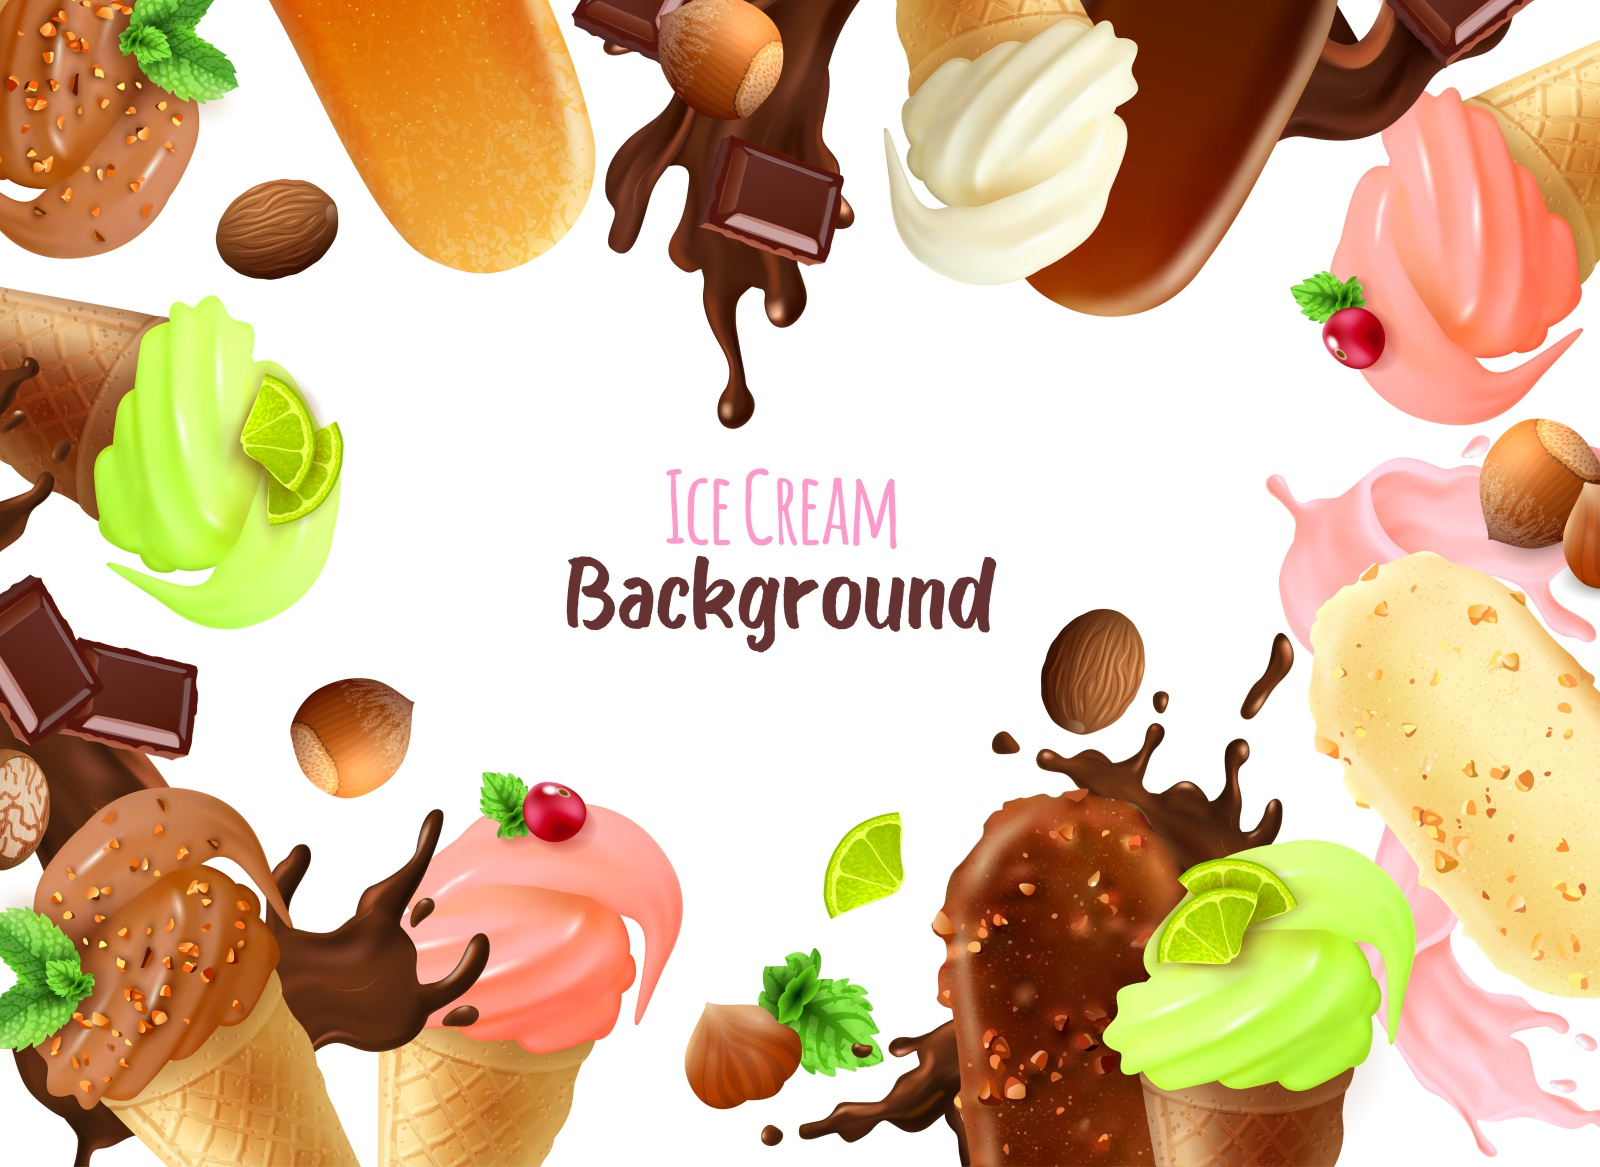 Ice Cream Background By Macrovector On Dribbble Download icons in all formats or edit them for your designs. ice cream background by macrovector on